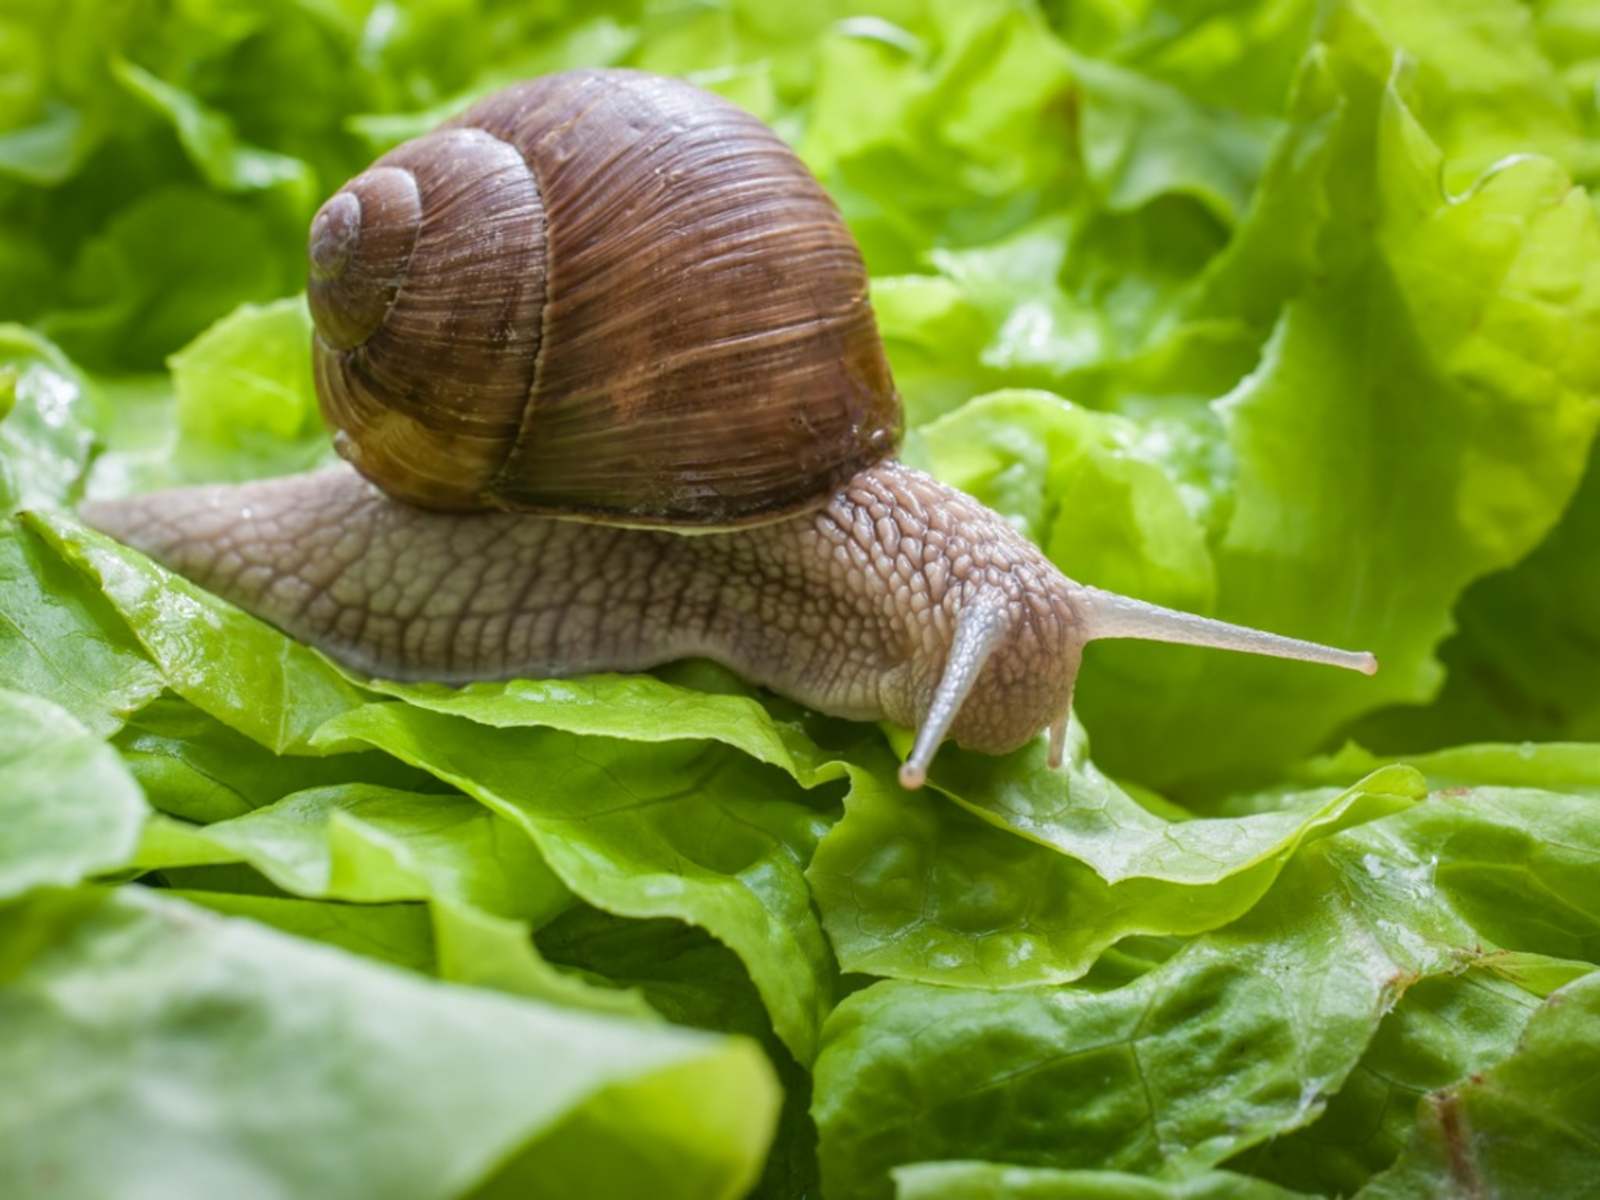 How To Control Snails Naturally In The Garden